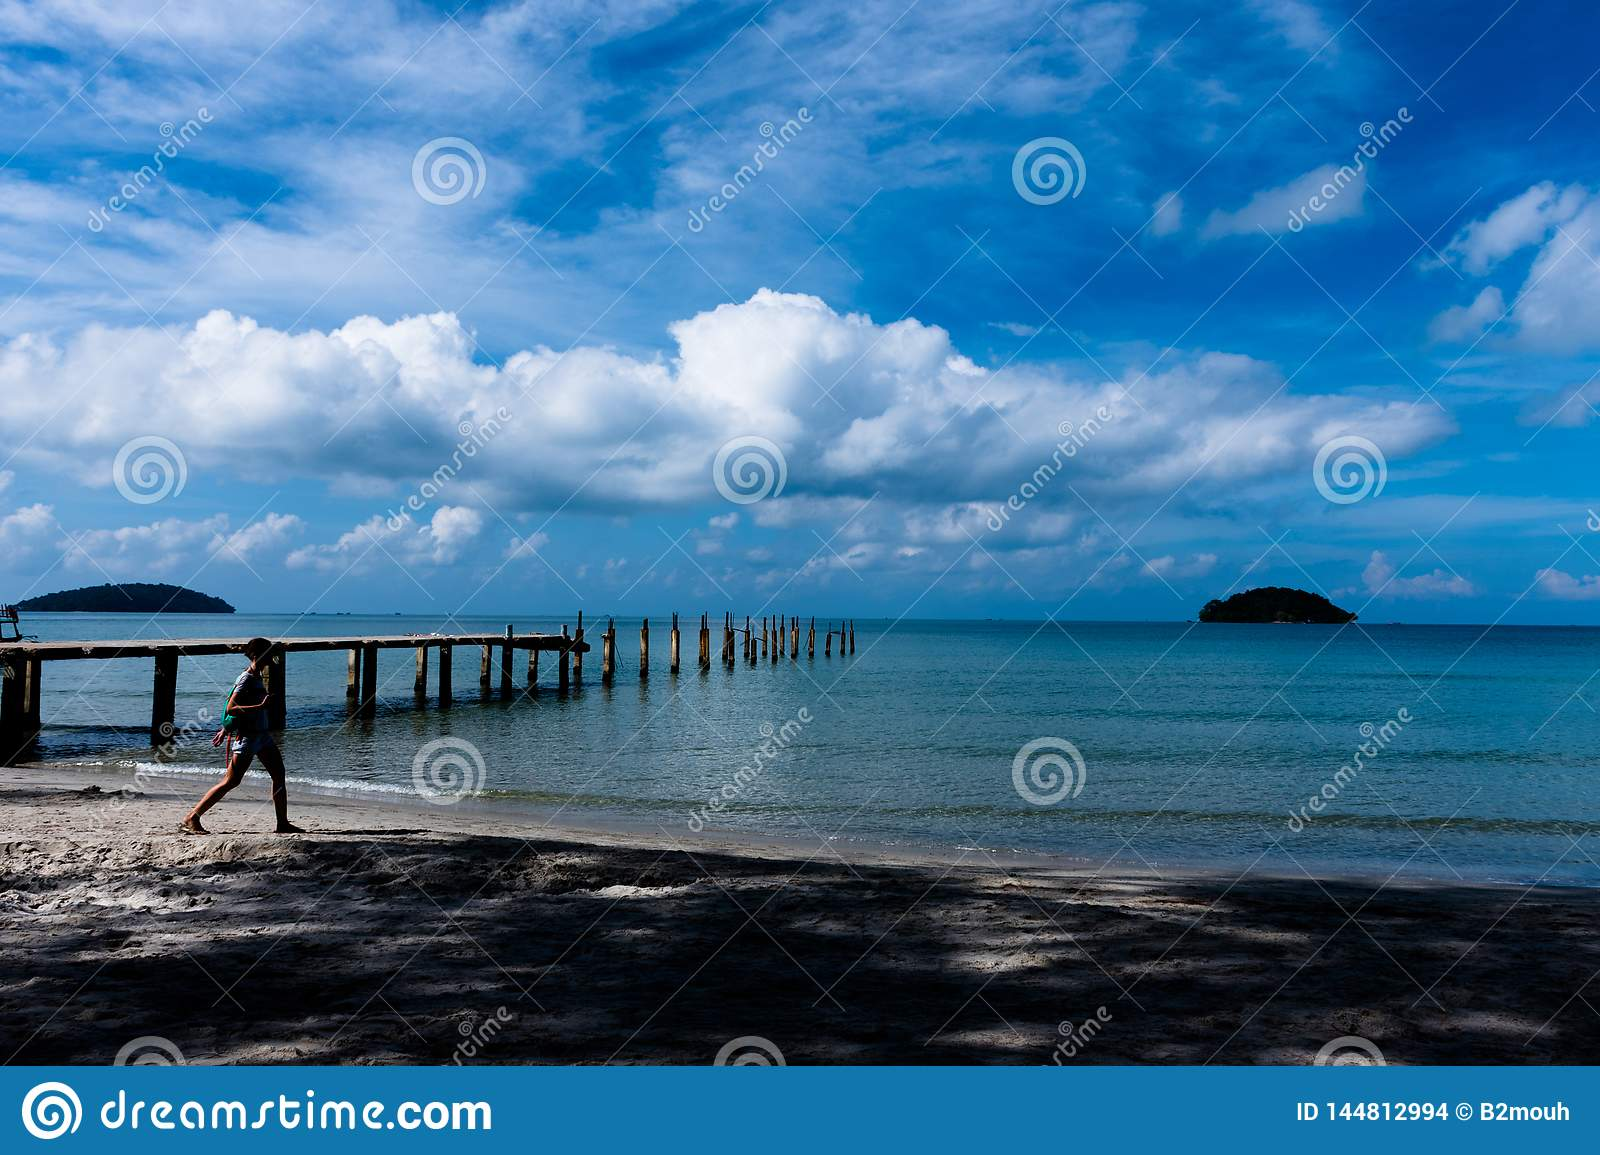 Beautiful clouds and pedestrians and bridges in the blue sky beyond the calm sea